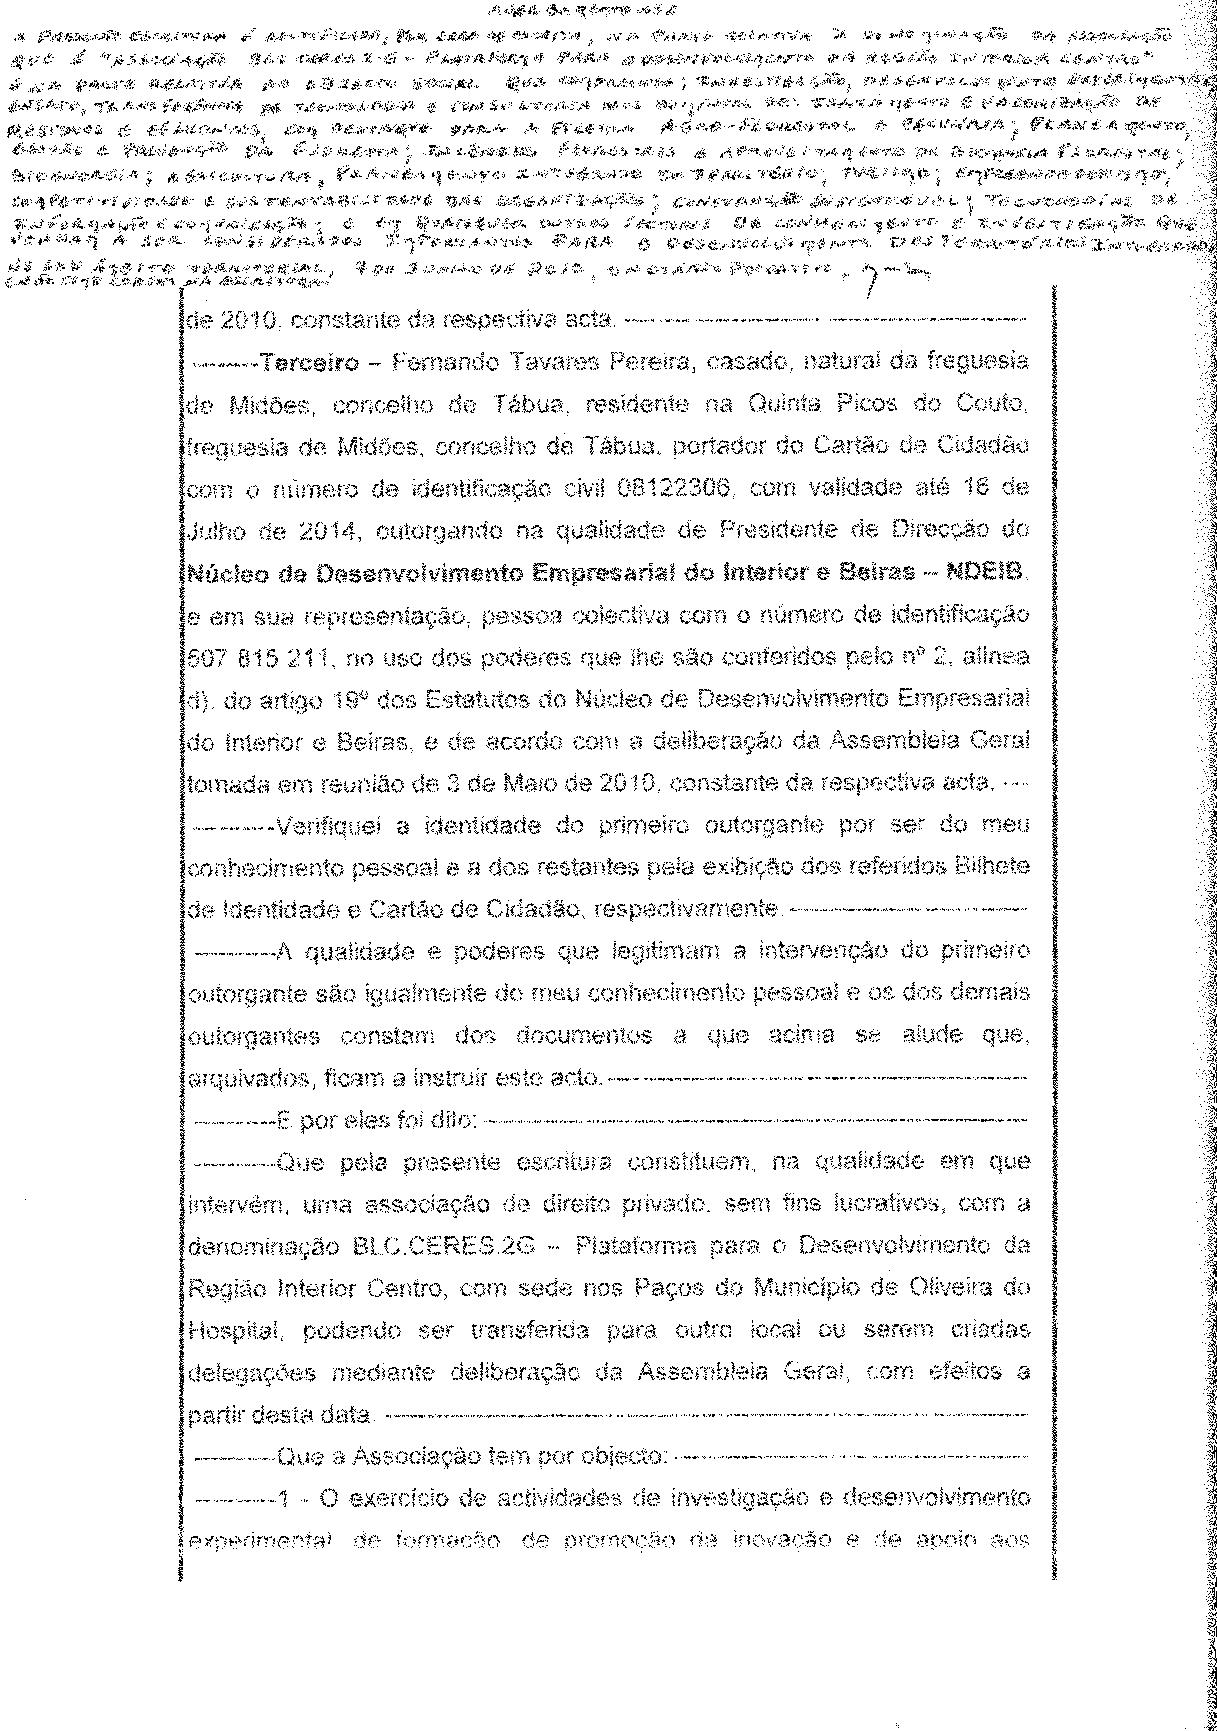 509402267_Associacao_BLC_rectificacao (5)-page-002